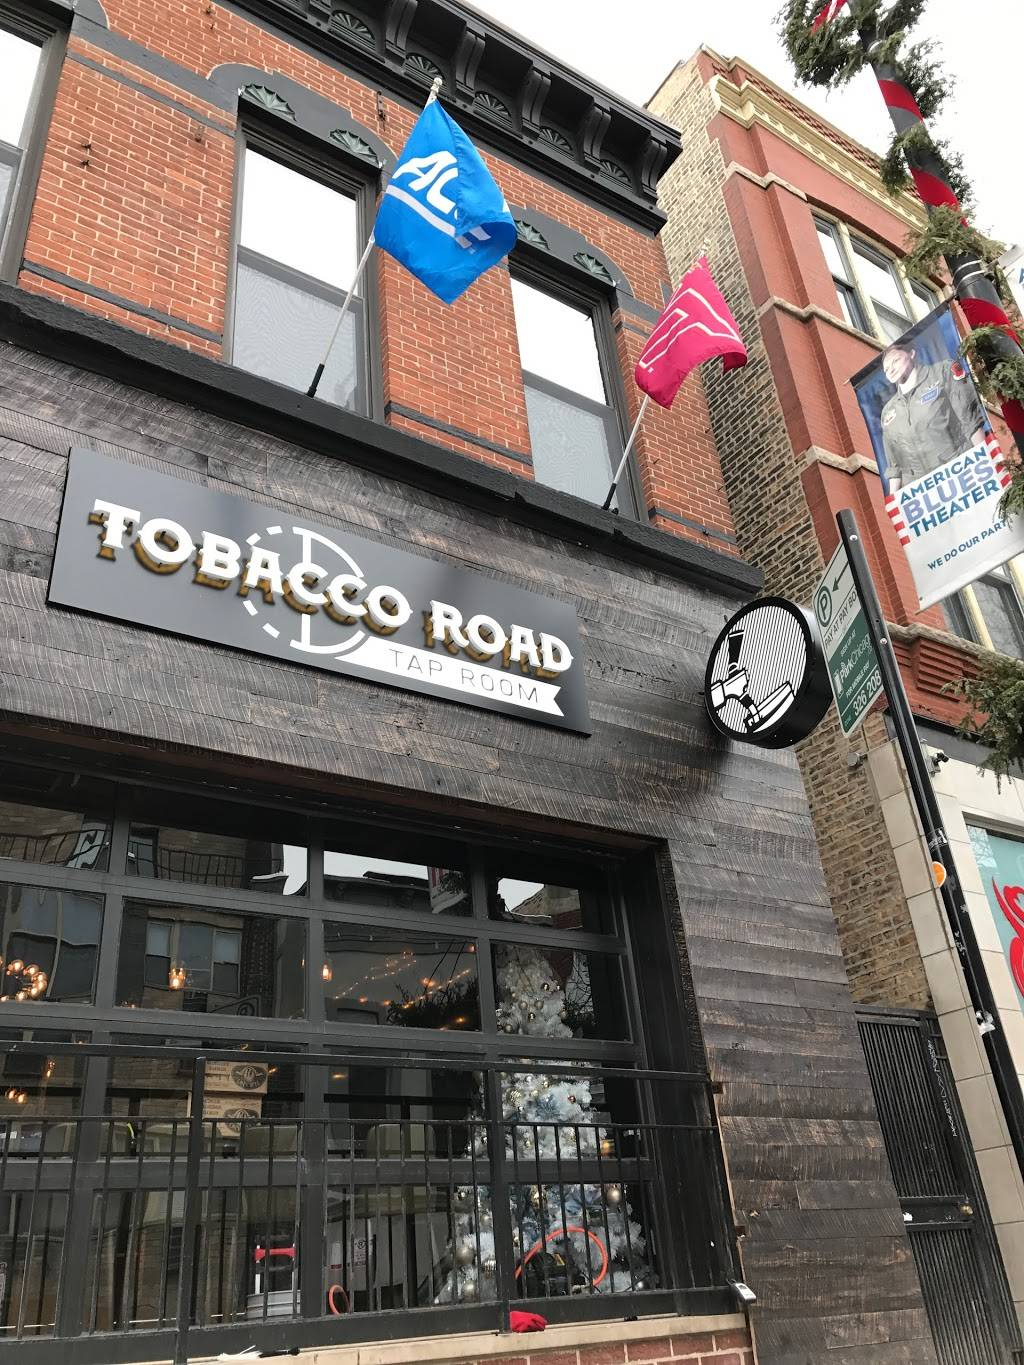 Tobacco Road Tap Room | restaurant | 2249 N Lincoln Ave, Chicago, IL 60614, USA | 7736616416 OR +1 773-661-6416